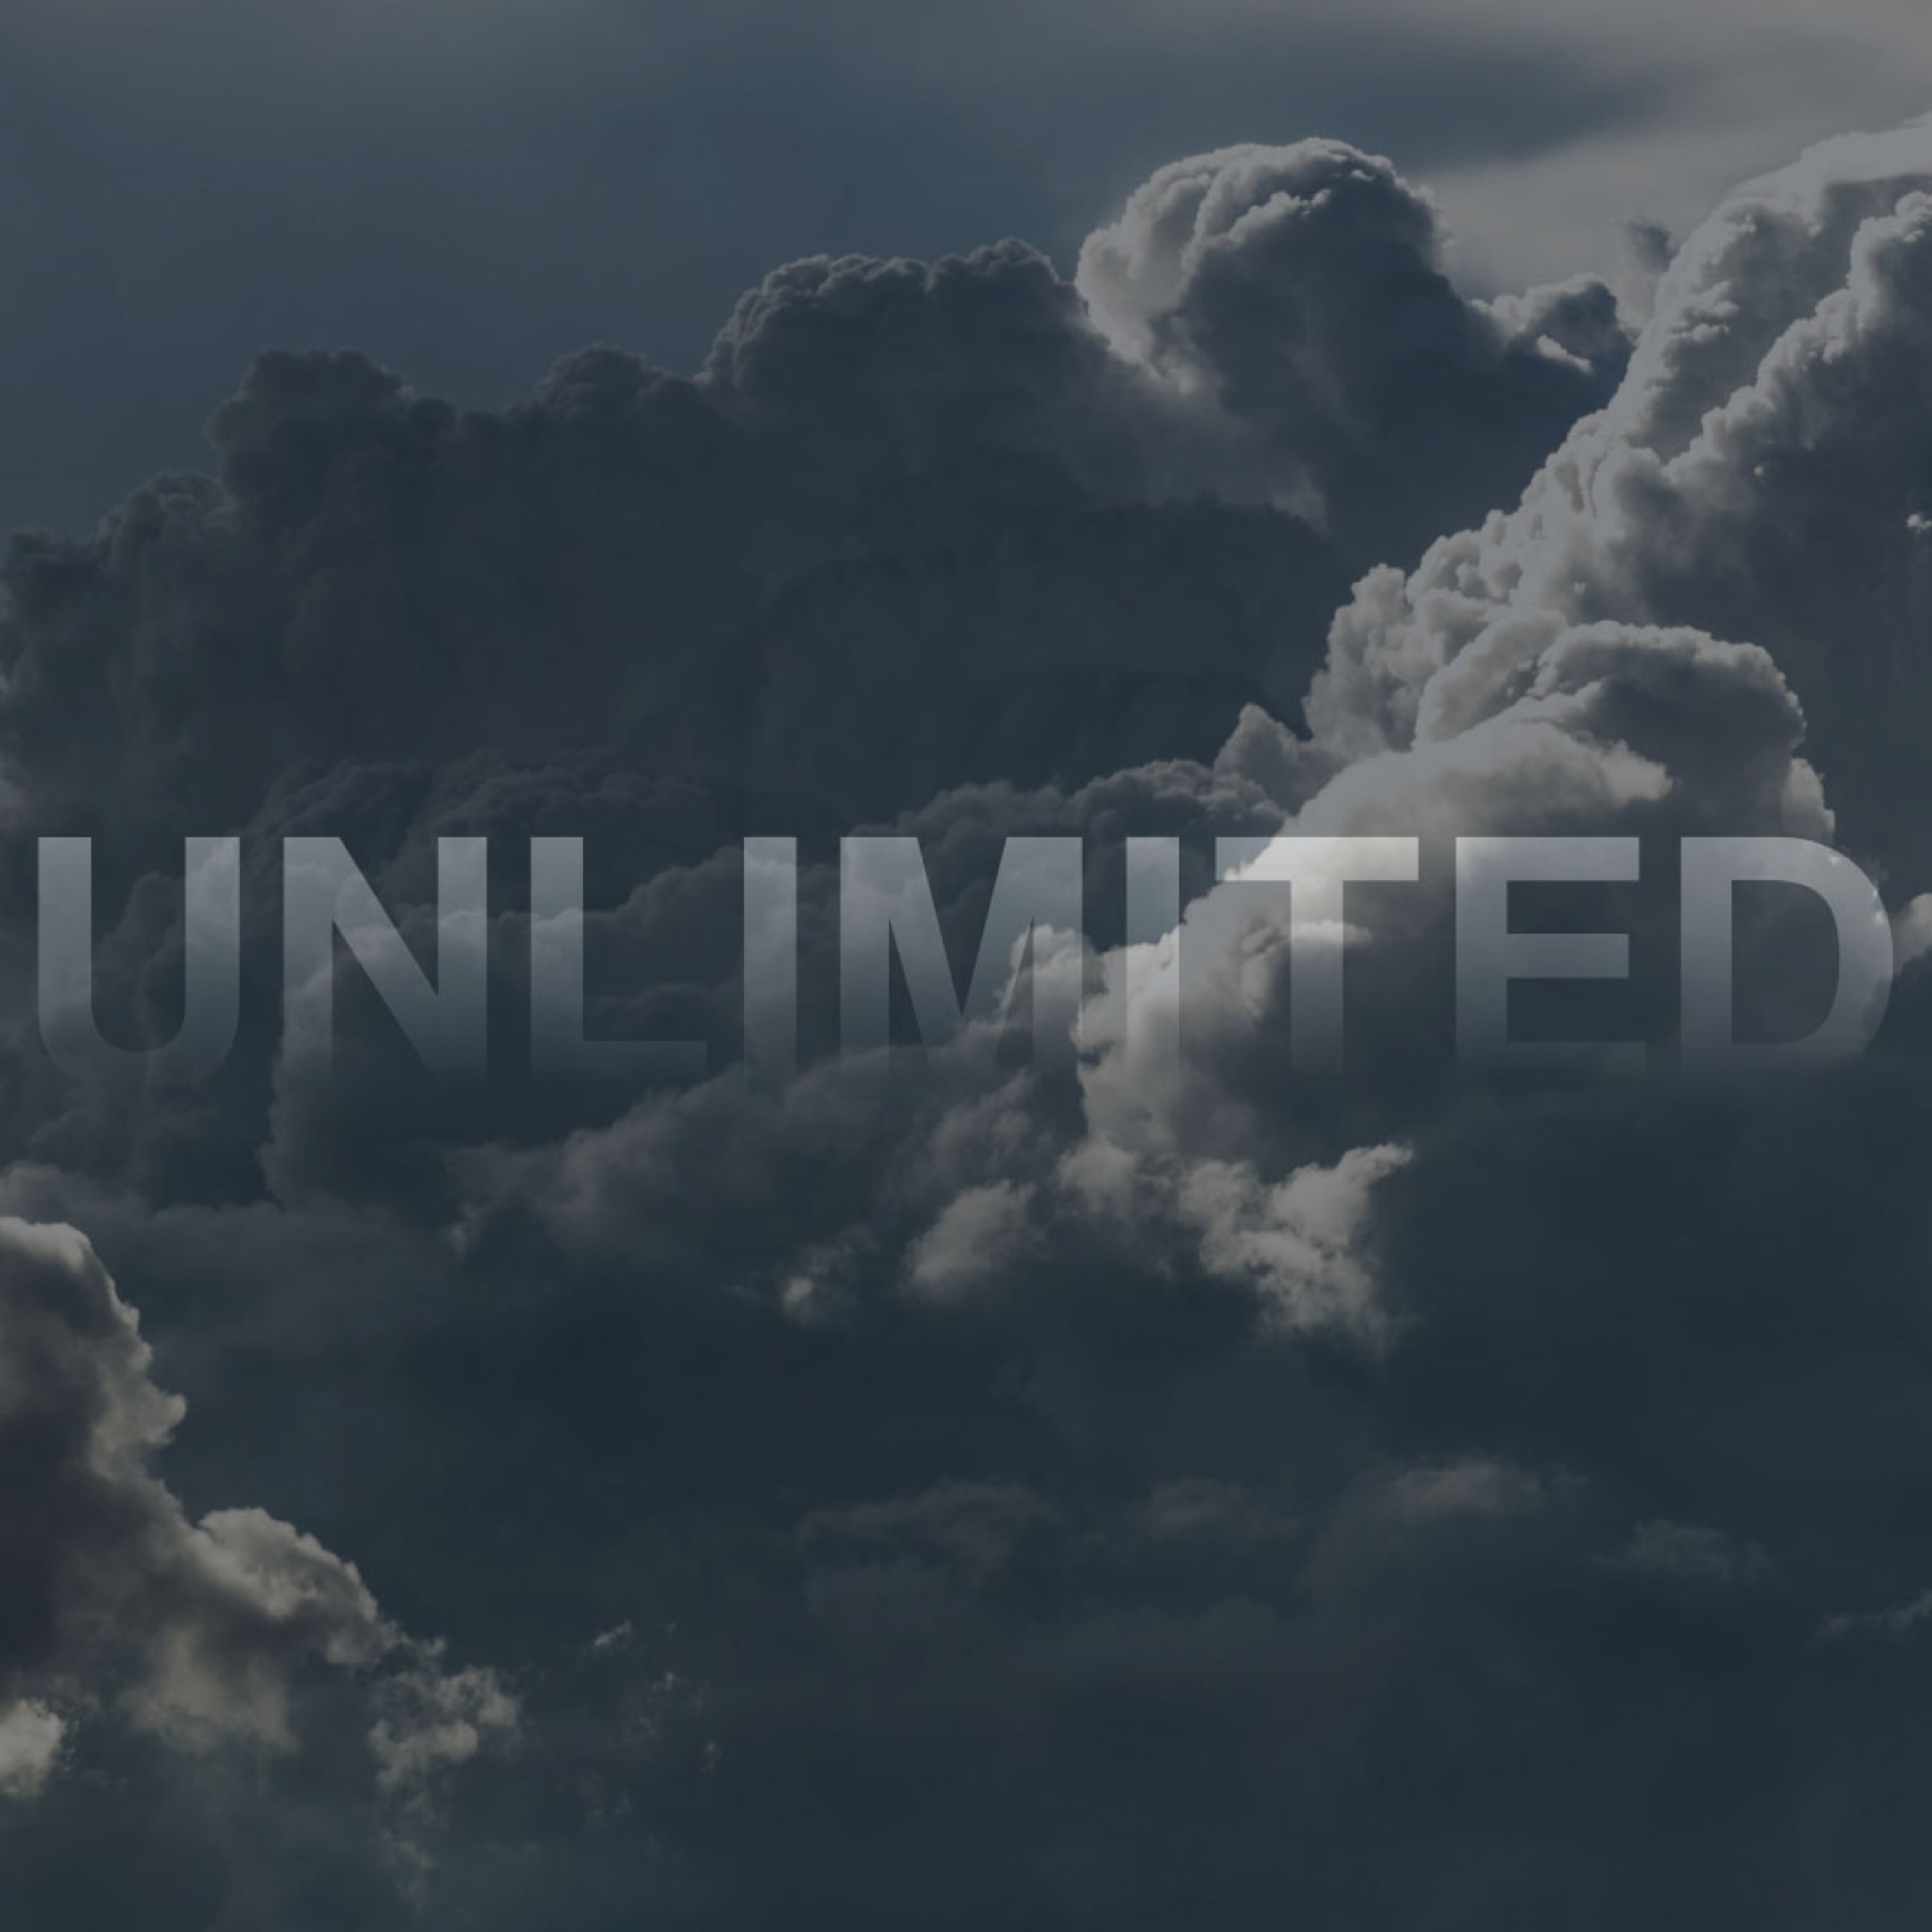 Unlimited #15